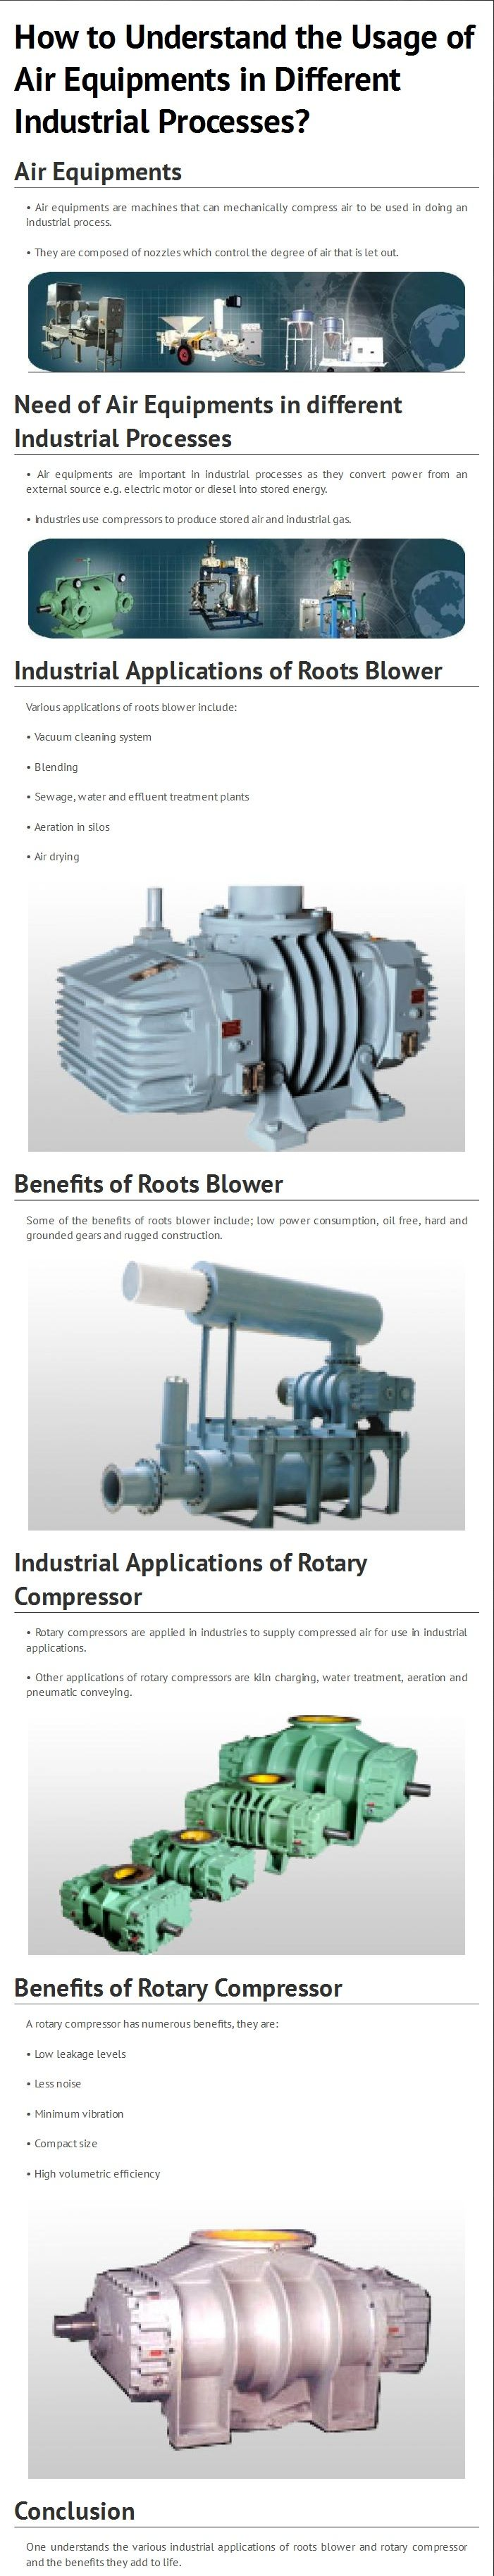 This infograph illustrates how to understand the usage of air equipments in different industrial processes including need of air equipments in different industrial processes, industrial applications of roots blower, benefits of roots blower, industrial applications of rotary compressor and benefits of rotary compressor. Get yourself more educated about the air equipments, here at - http://www.acmeairequipments.com/twin-lobe-roots-blowers-exhausters.html